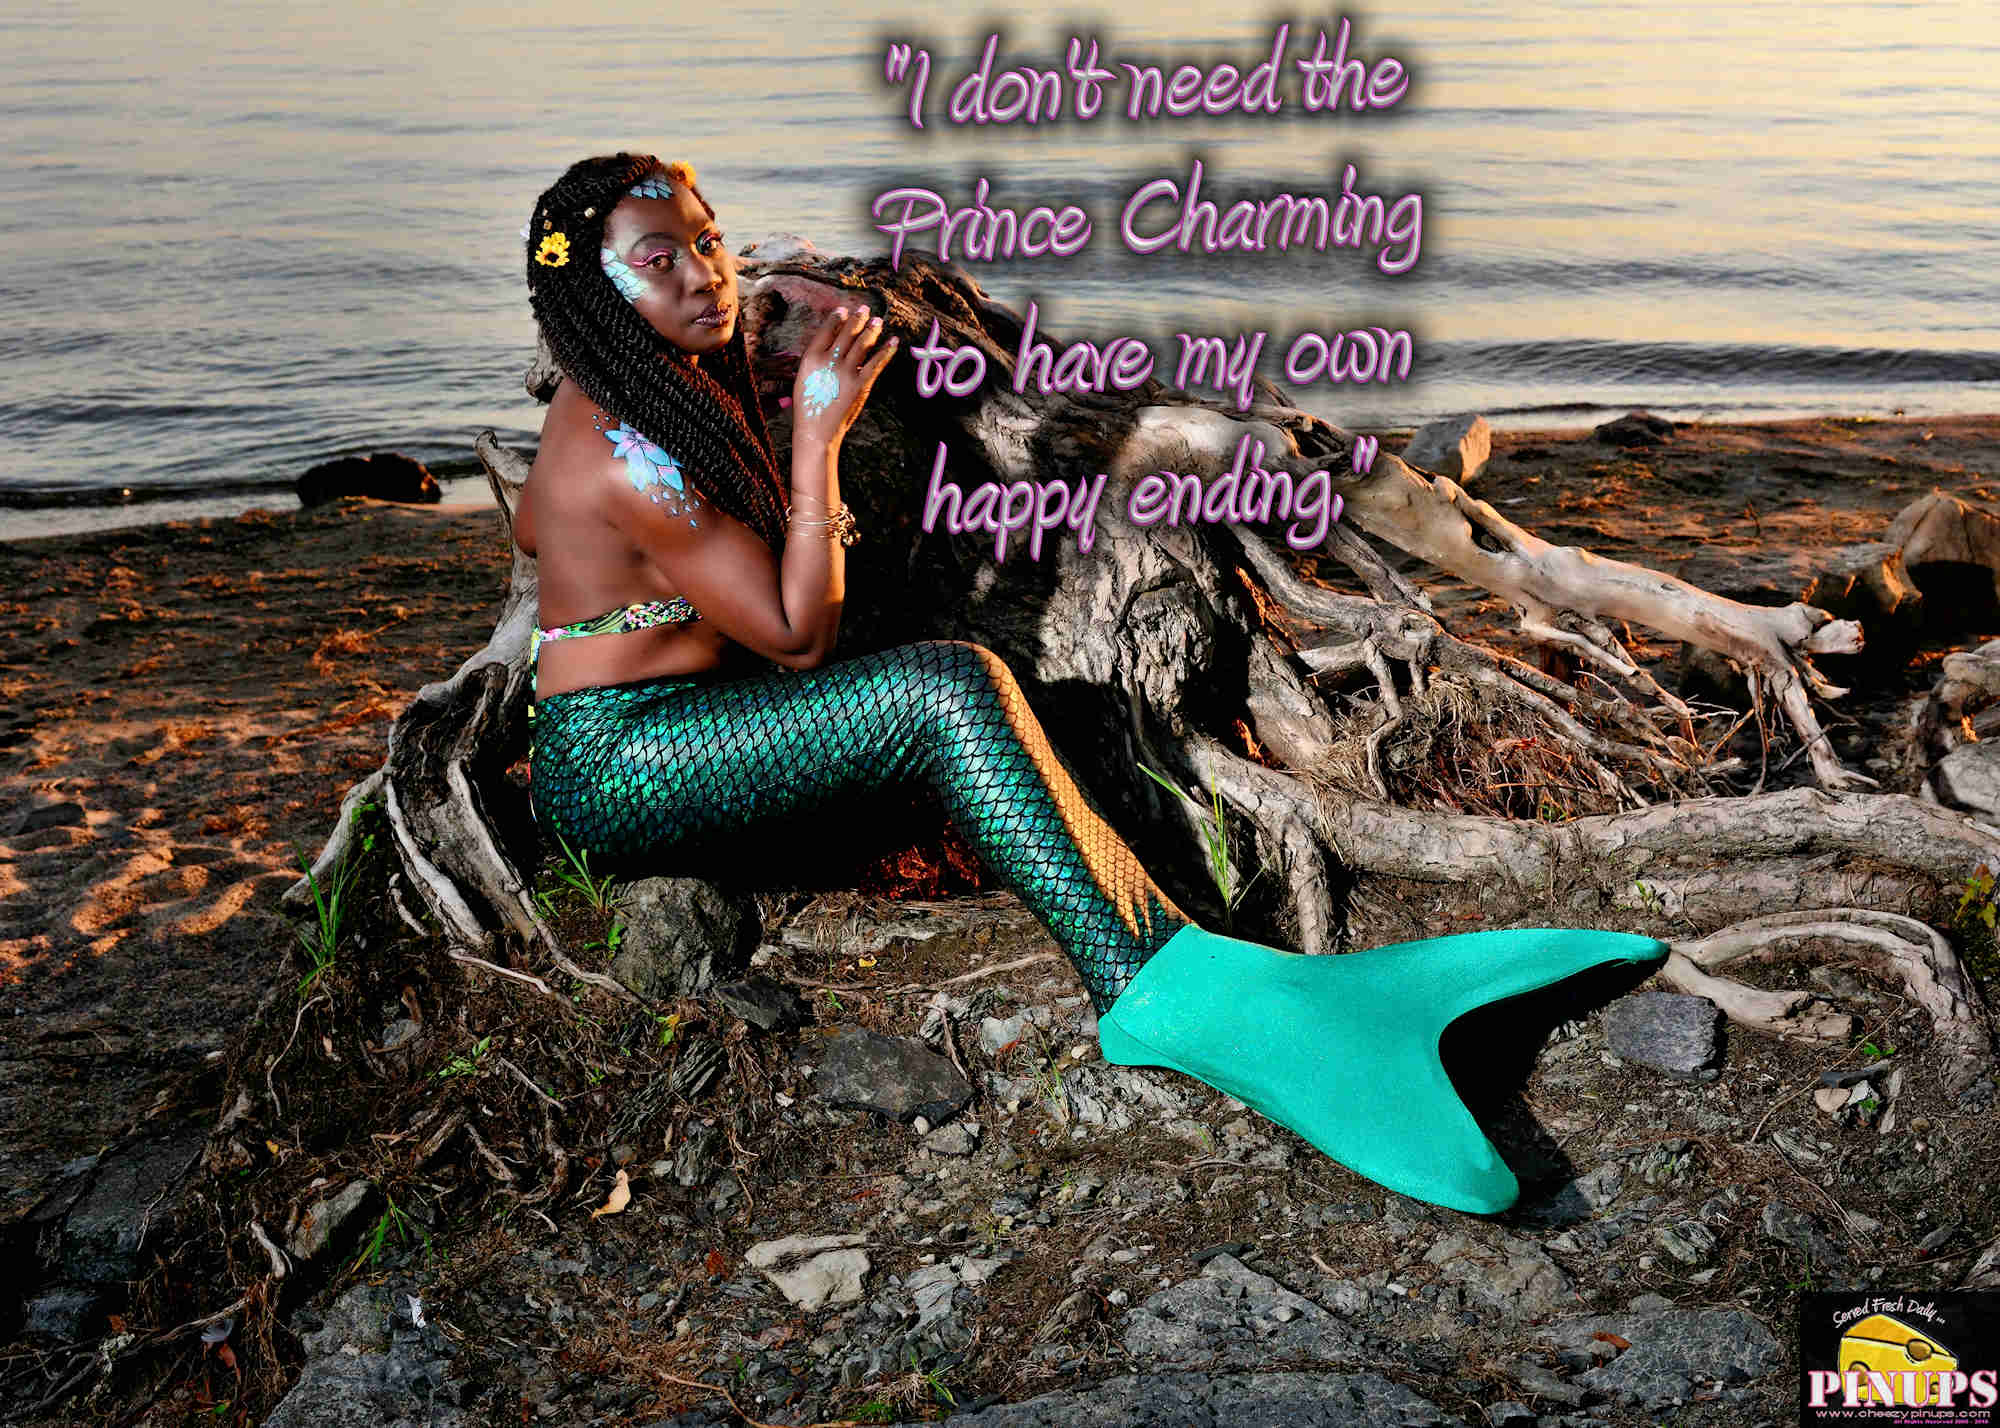 "Cheezy Pinup - October 25, 2018   ""I don't need the Prince Charming to have my own happy ending."" - Katy Perry Model: Flo"